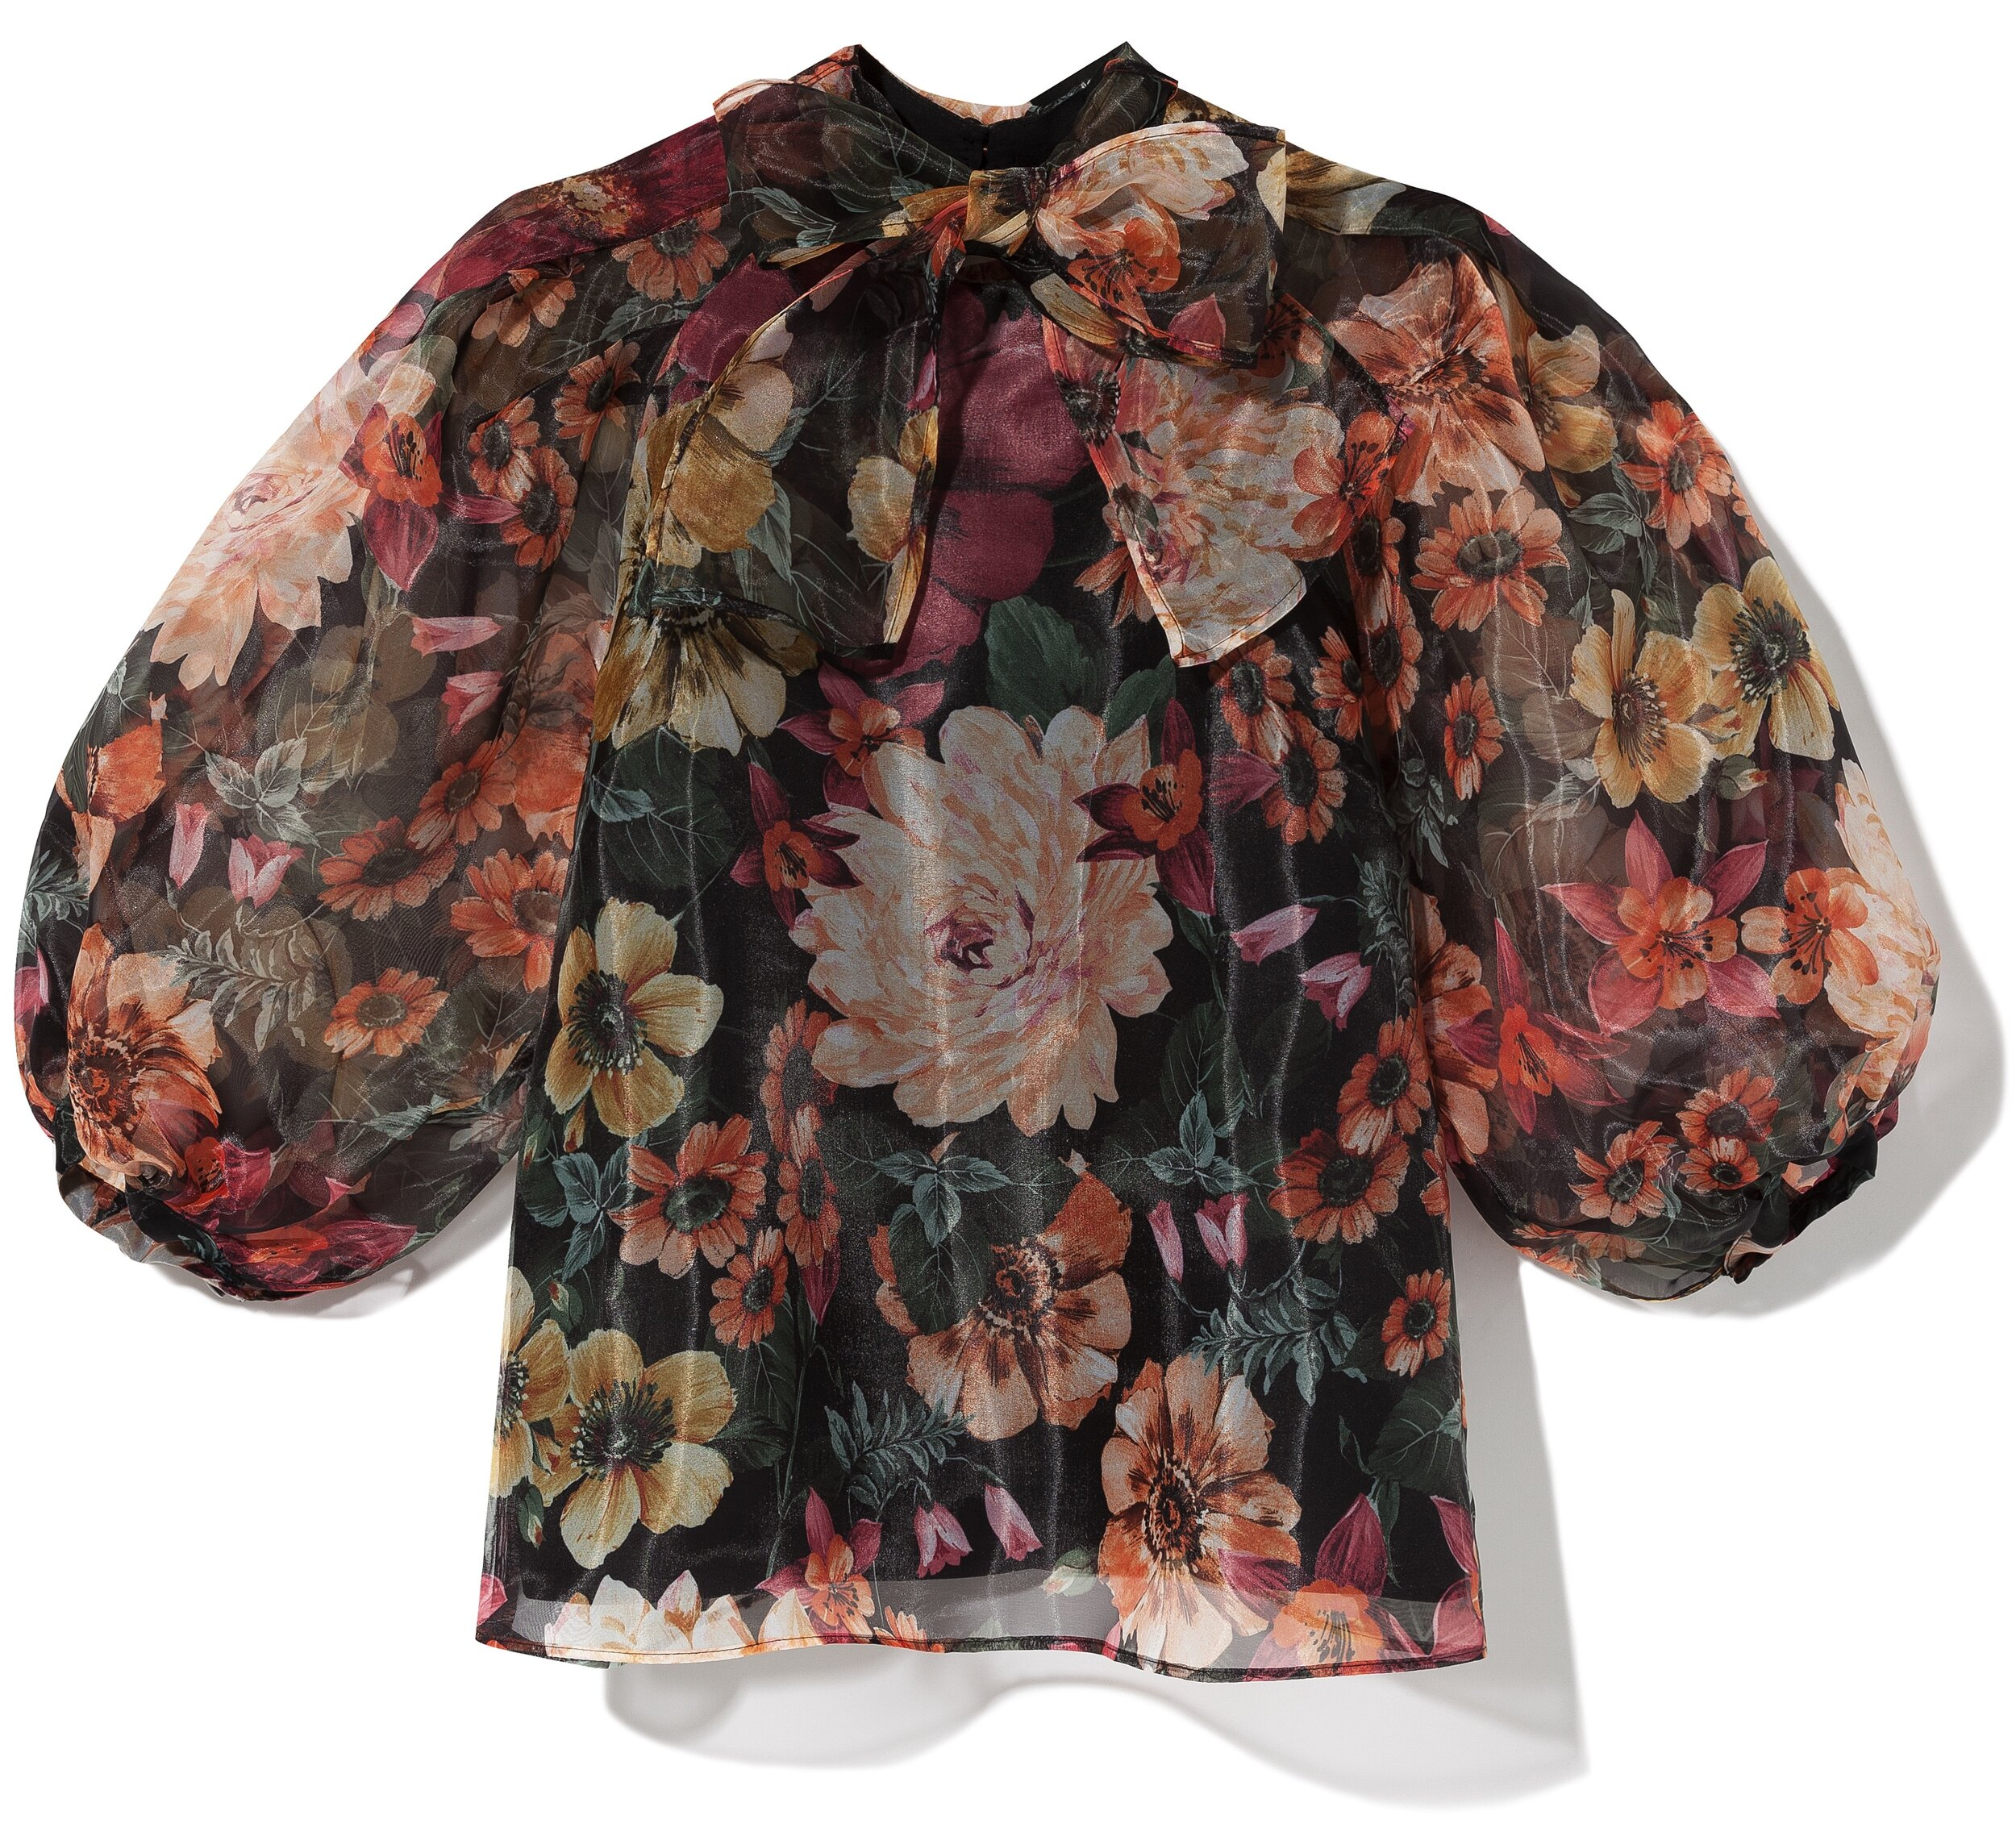 Puff sleeve blouse £34.99 #CiaoKendall for Reserved